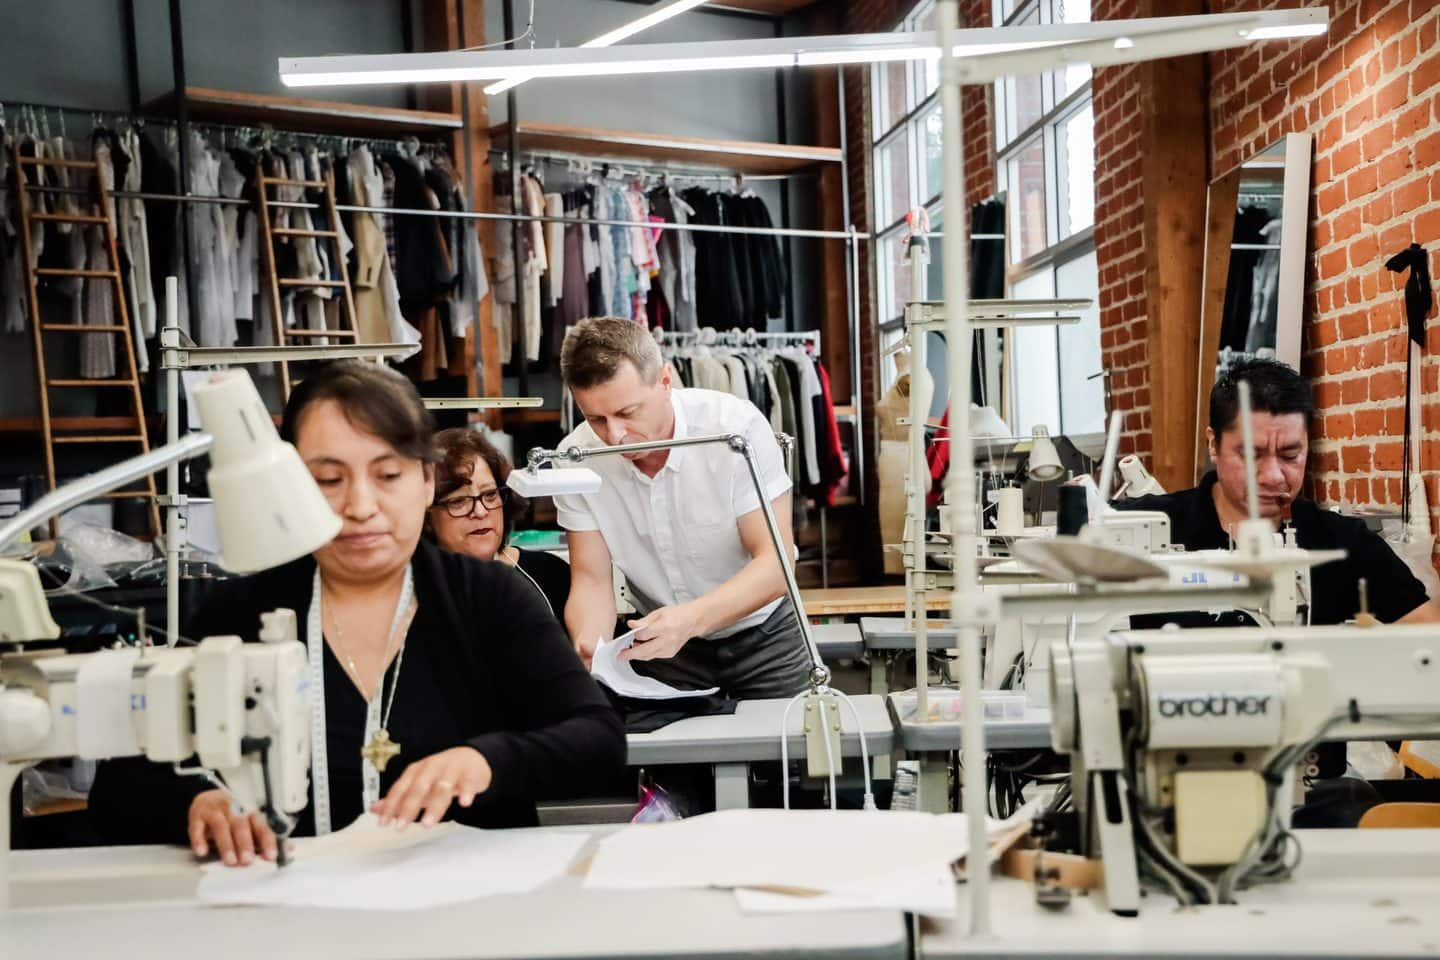 Team of clothing manufacturers working at sewing machines in the TEG Los Angeles clothing factory